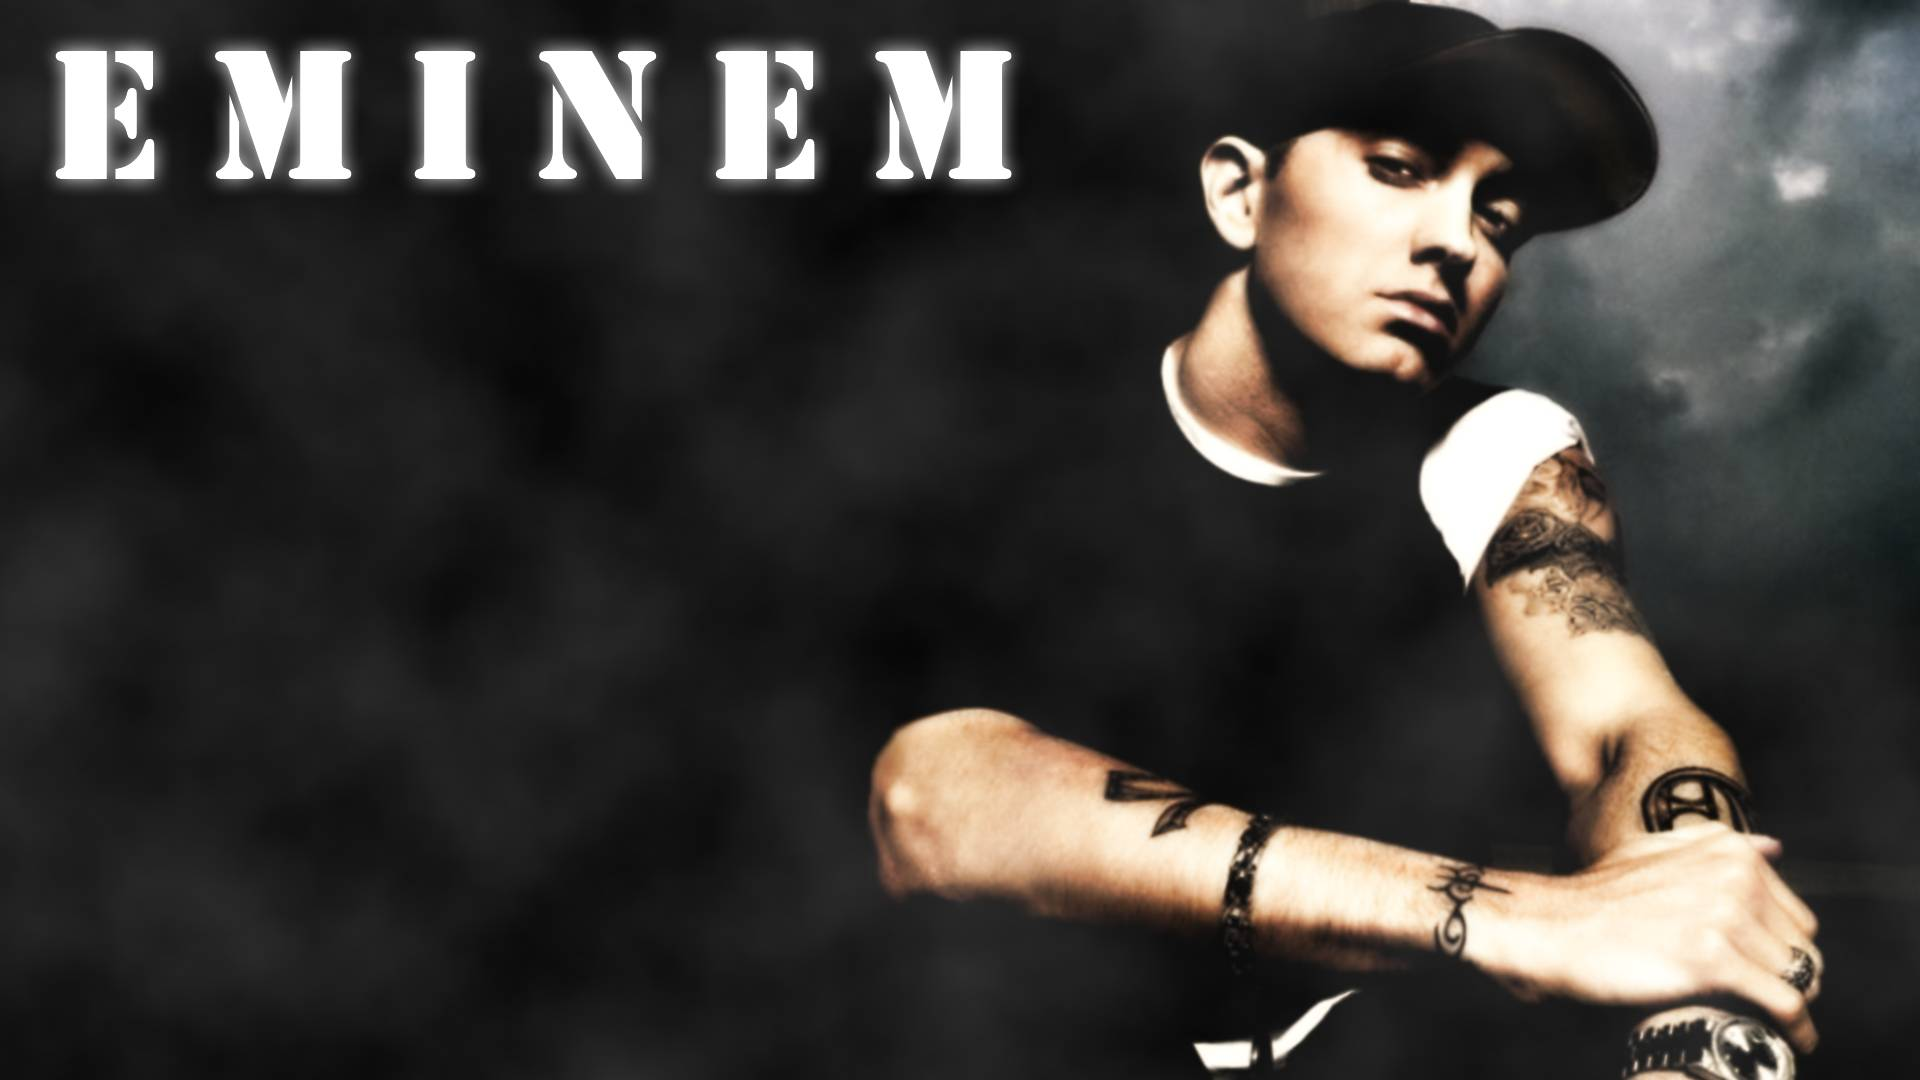 Eminem Wallpapers HD Download 1920x1080